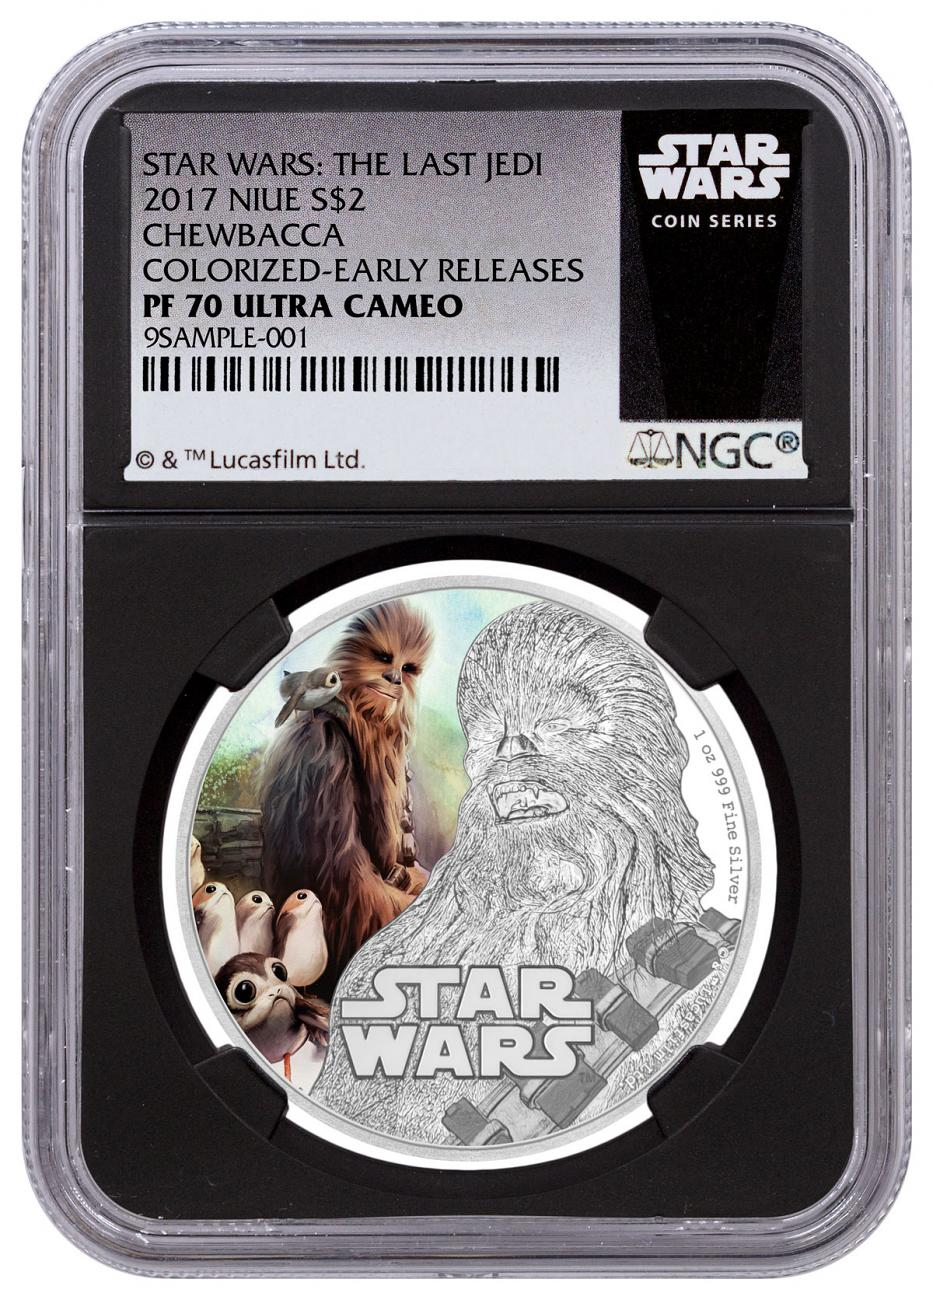 2017 Niue Star Wars: The Last Jedi - Chewbacca 1 oz Silver Colorized Proof $2 Coin NGC PF70 UC ER Black Core Holder Exclusive Star Wars Label